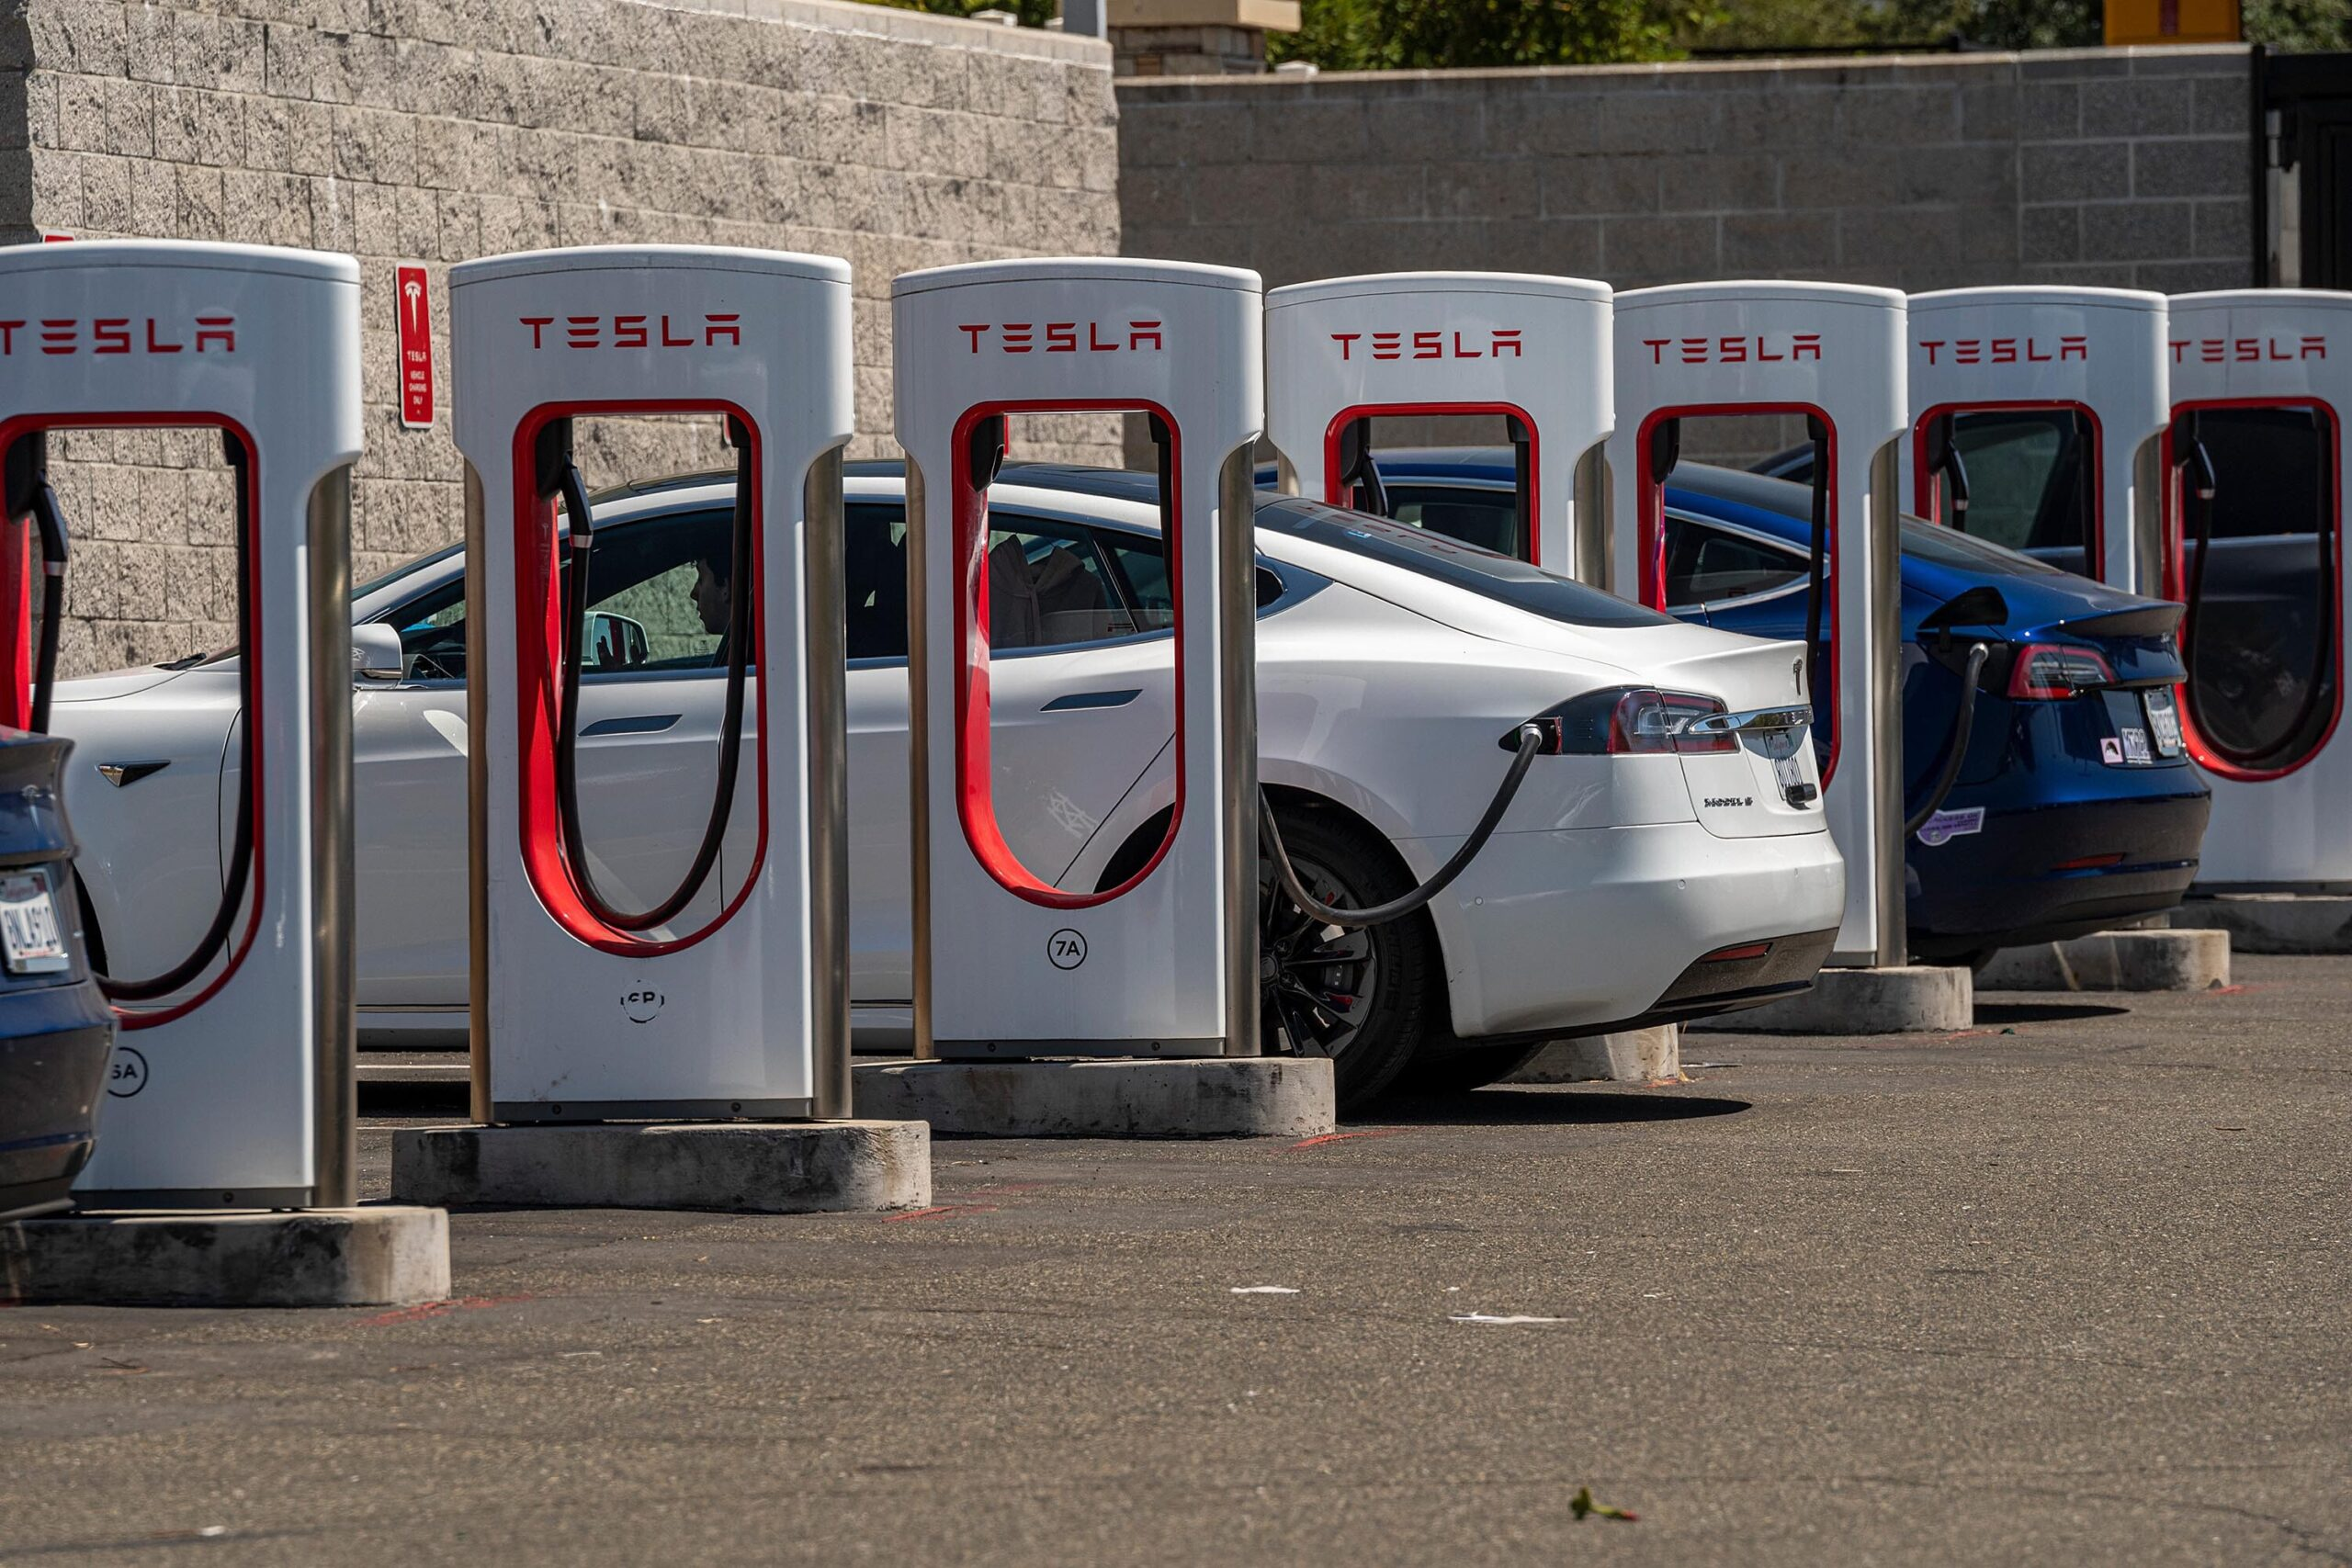 <i>David Paul Morris/Bloomberg/Getty Images</i><br/>Tesla vehicles at charging stations outside a store in Rocklin